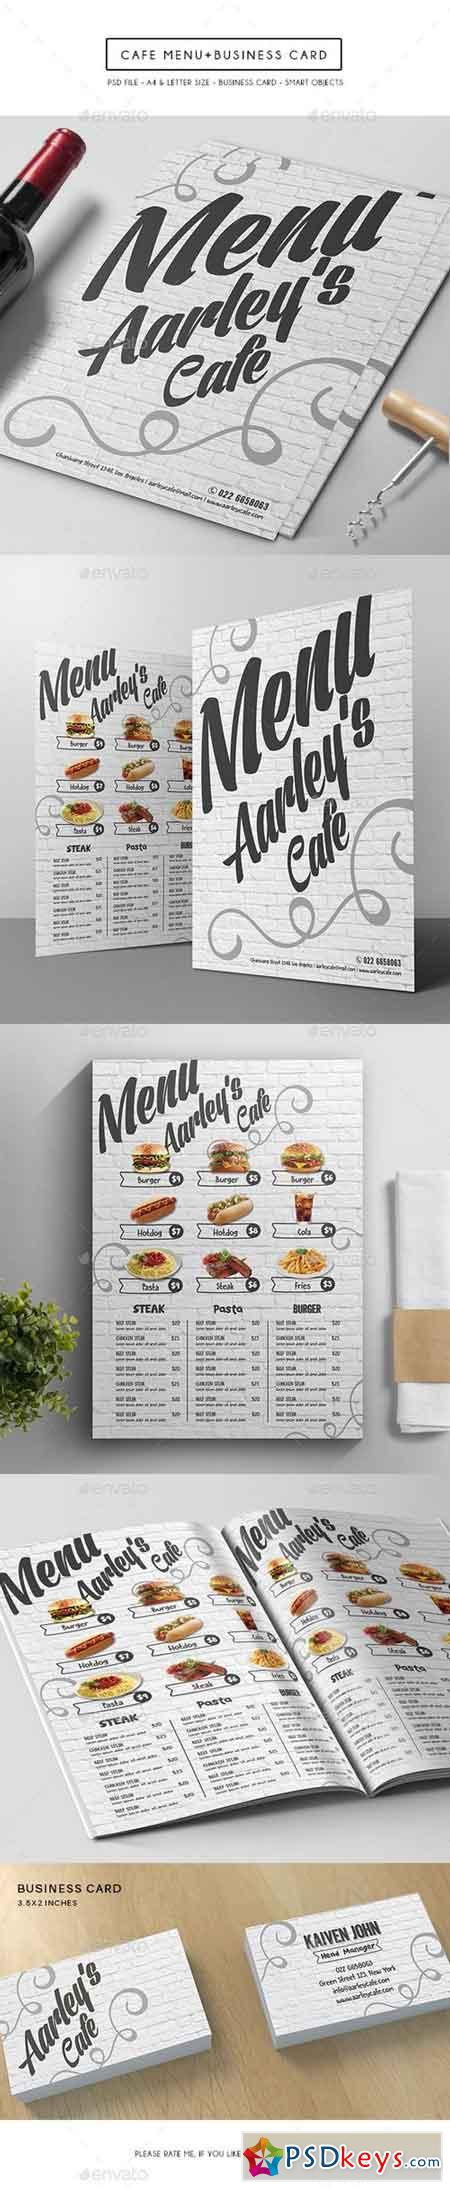 Cafe Menu + Business Card 15086419